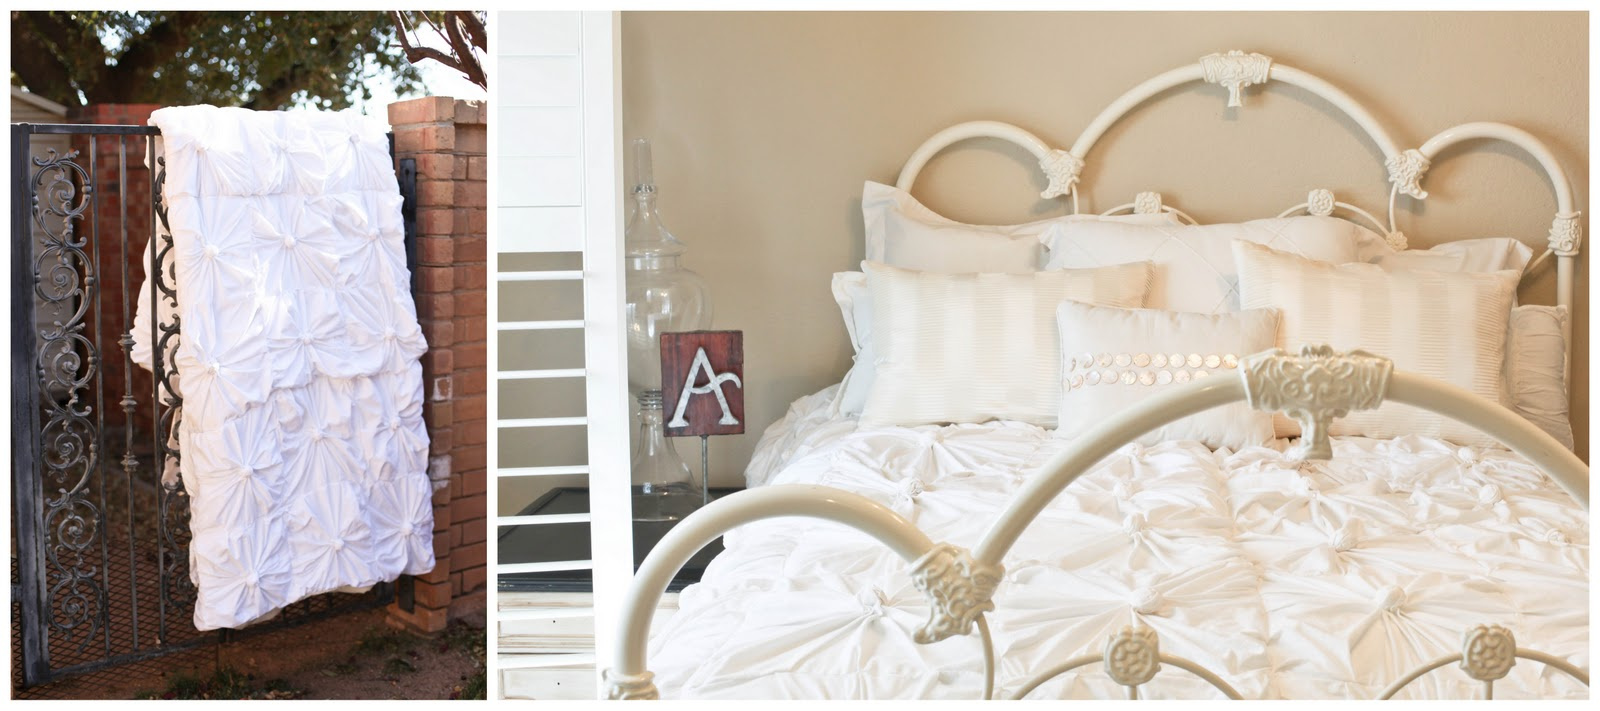 Anthropologie Inspired Knotted Bedding Part 2 Putting It